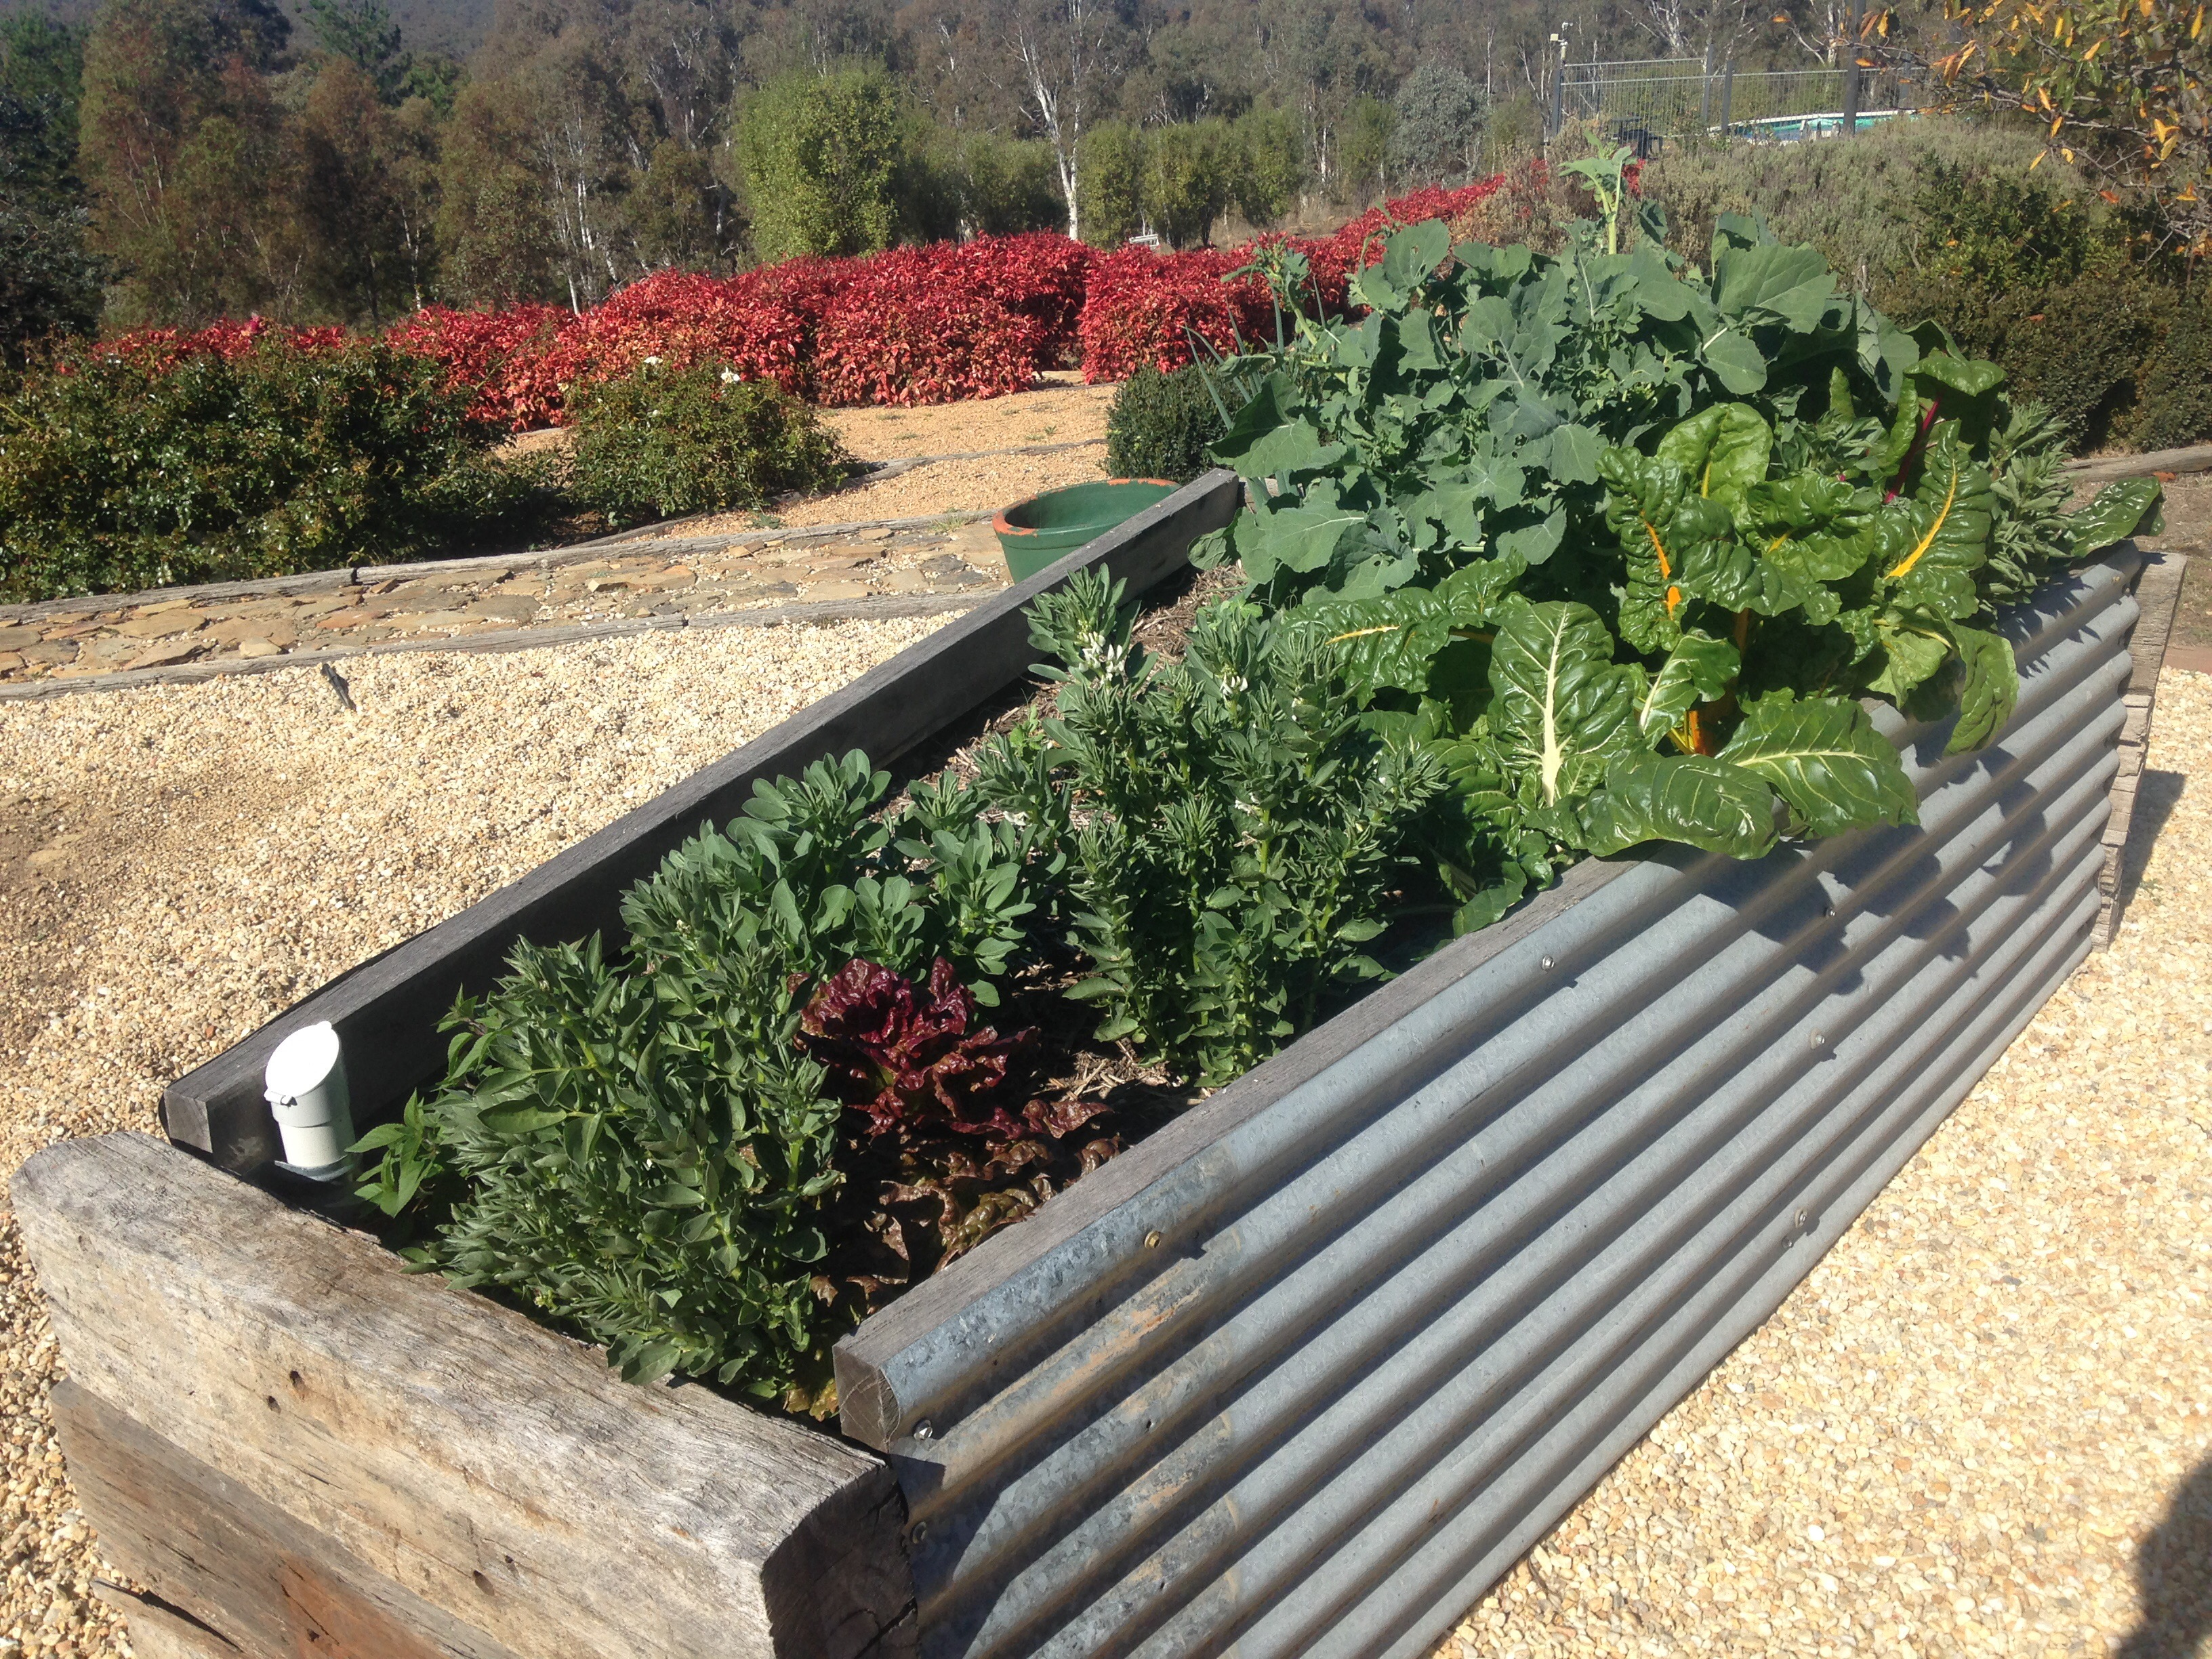 how to build wicking garden beds – part 1